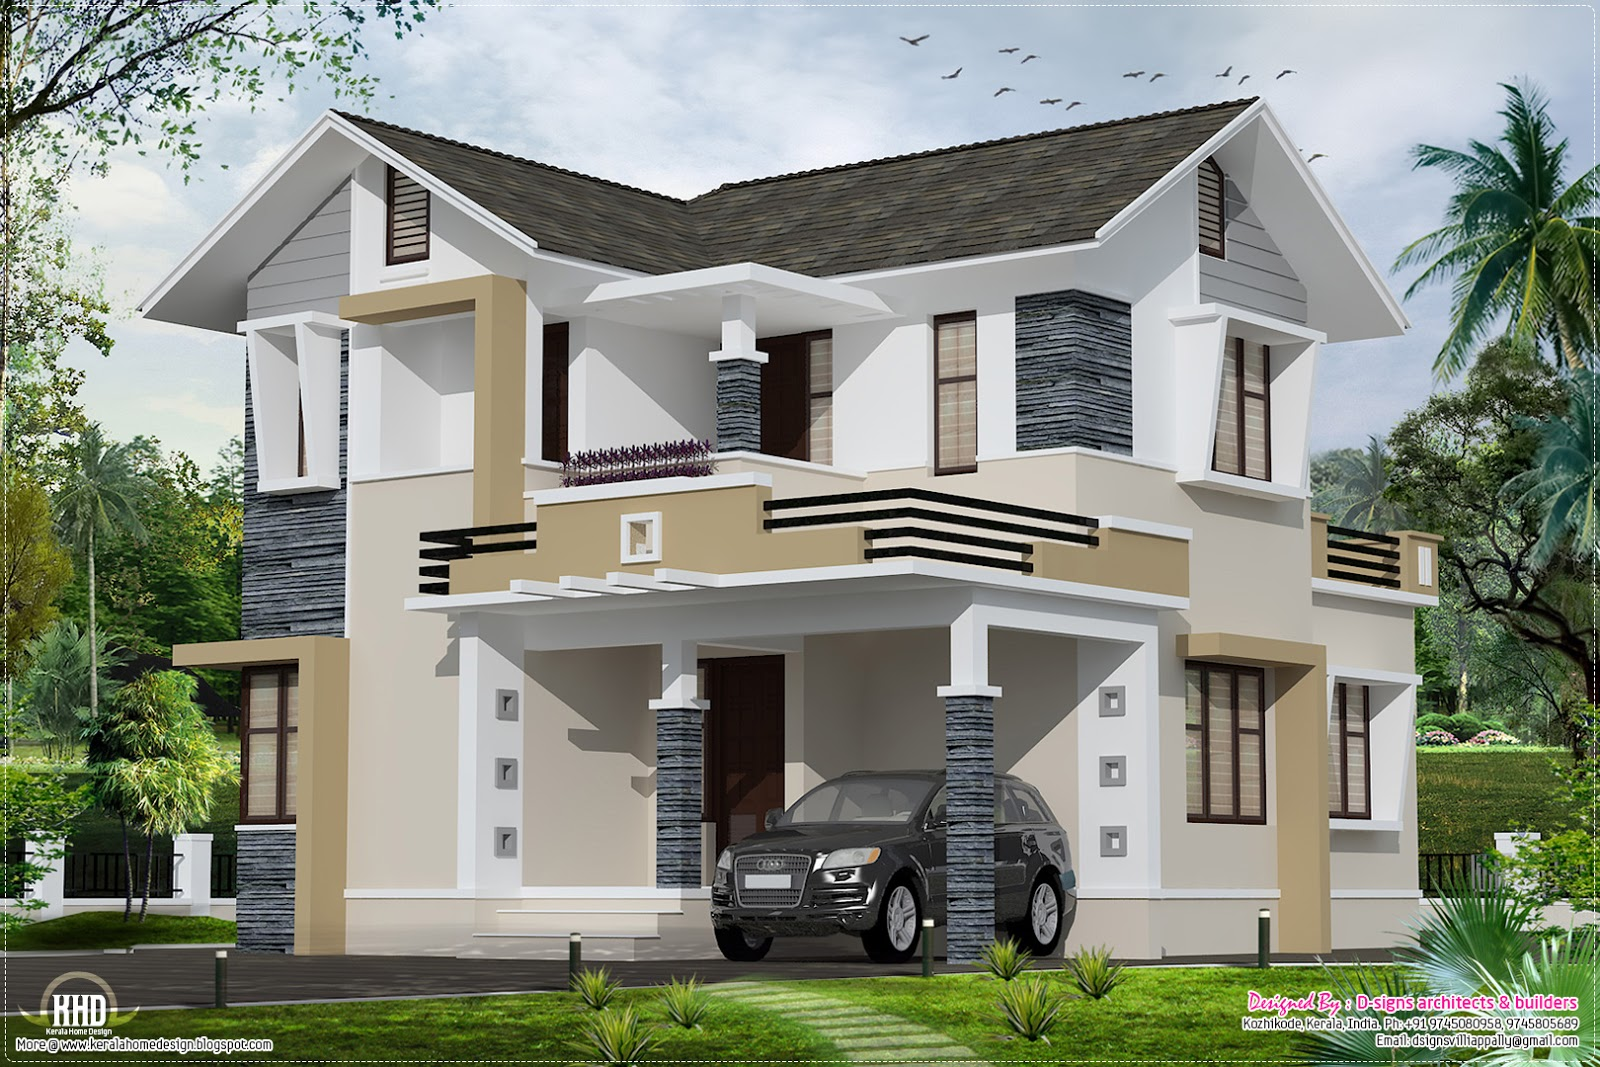 February 2013 kerala home design and floor plans for Small home design ideas video